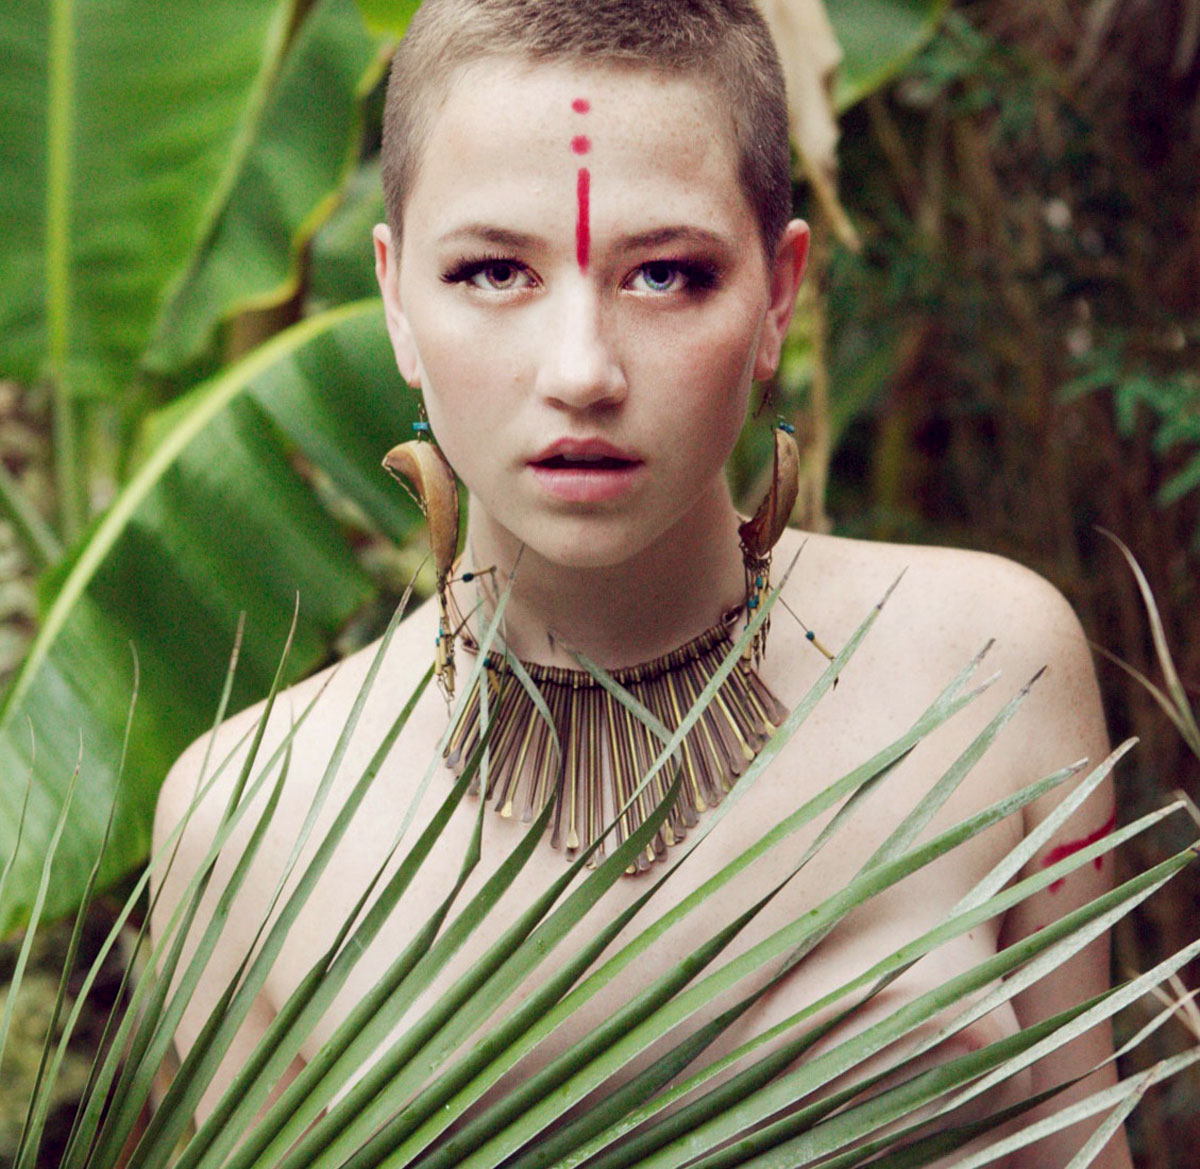 bohemian,lifestyle,fashion,blogger,photographer,tropical,film location rental,bald girl, bald model